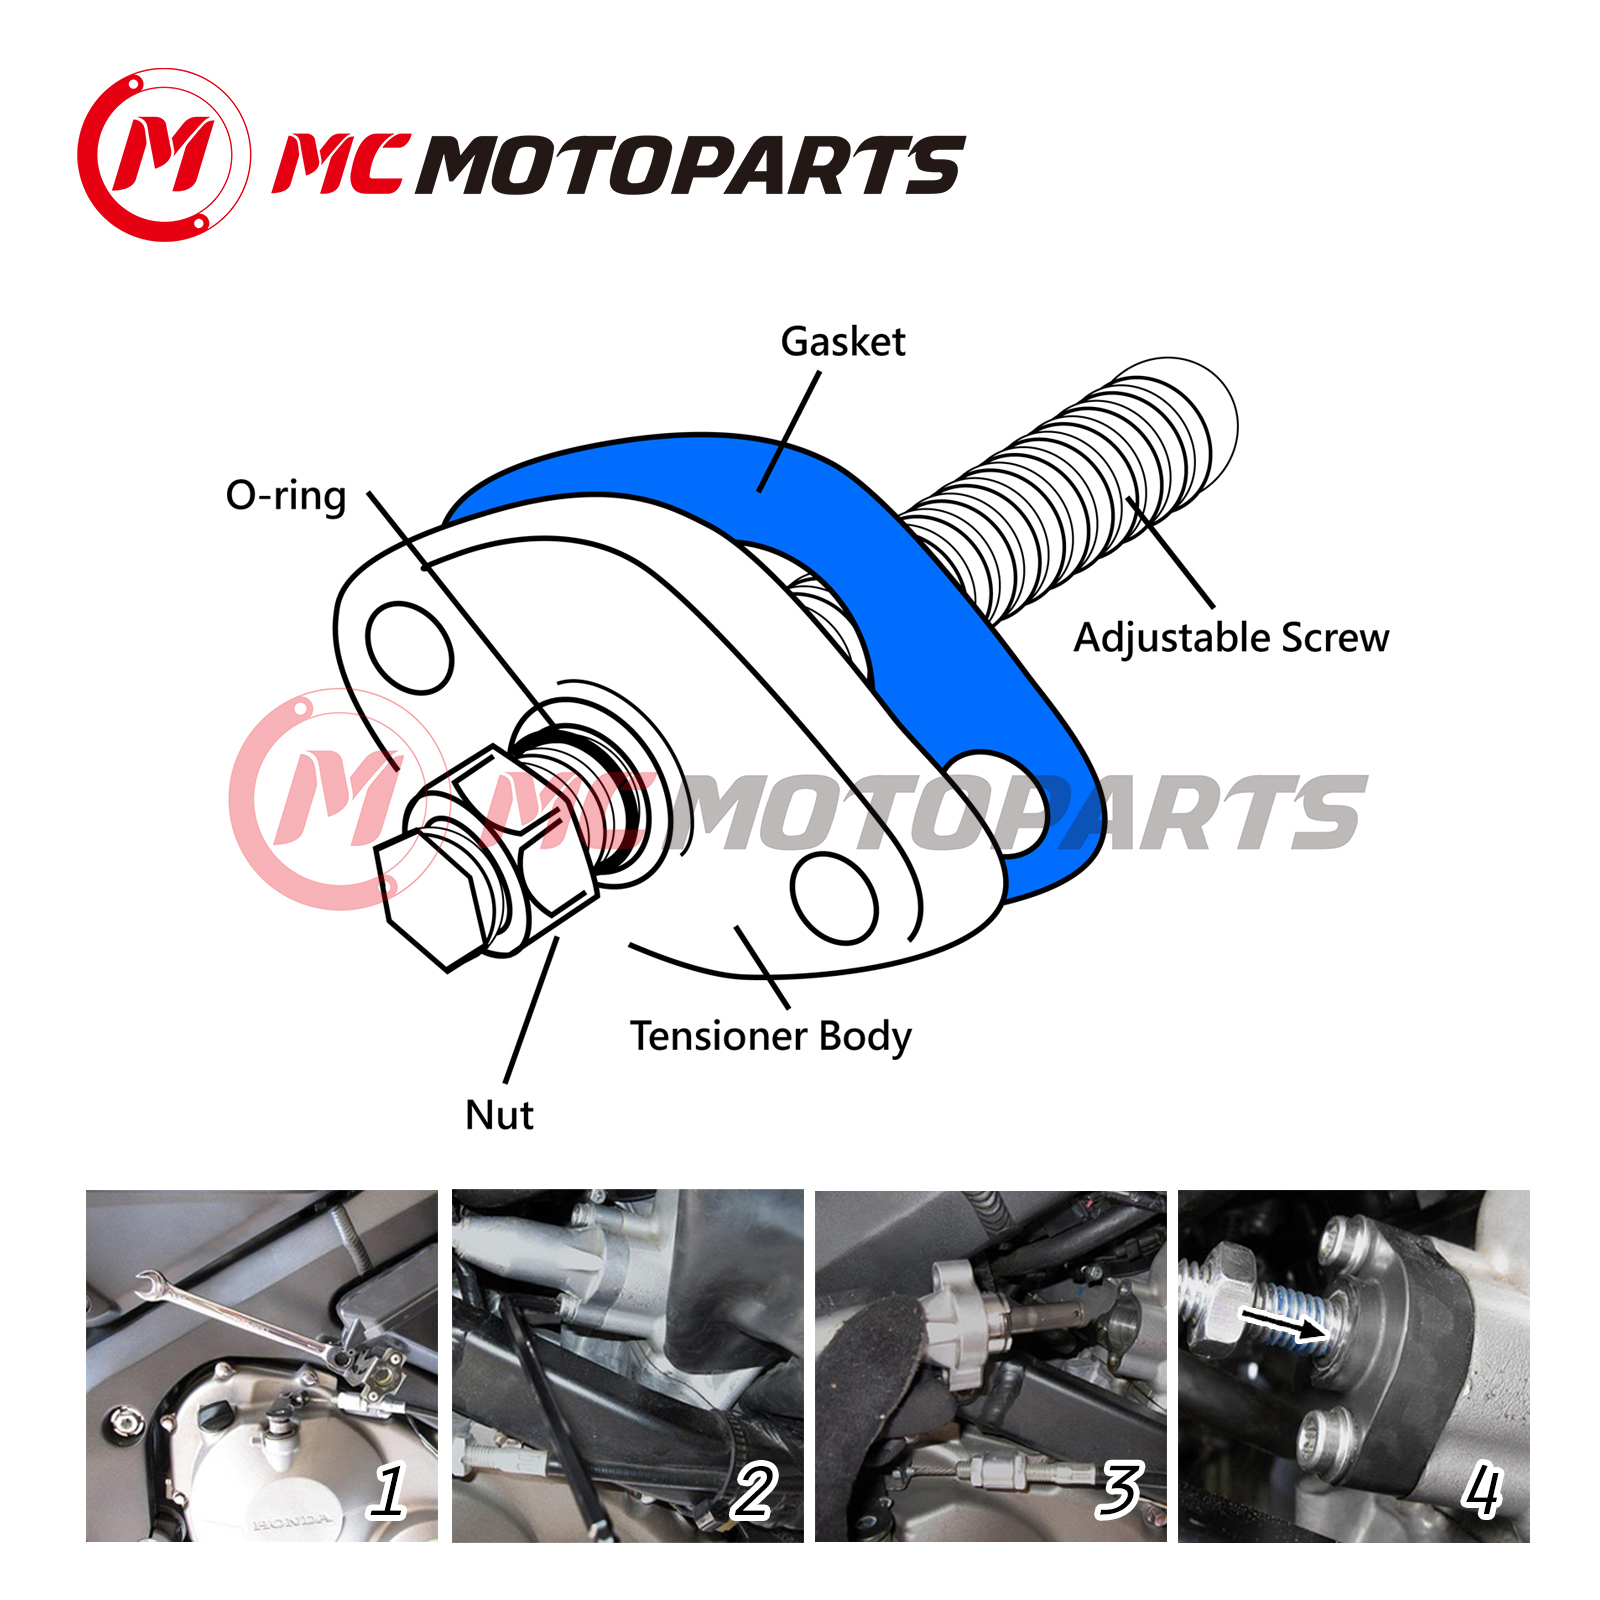 MC MOTOPARTS CNC HP Manual Cam Chain Tensioner For ATV Yamaha YFM 700 660 600 550 Grizzly Red YFM 700 660 Raptor